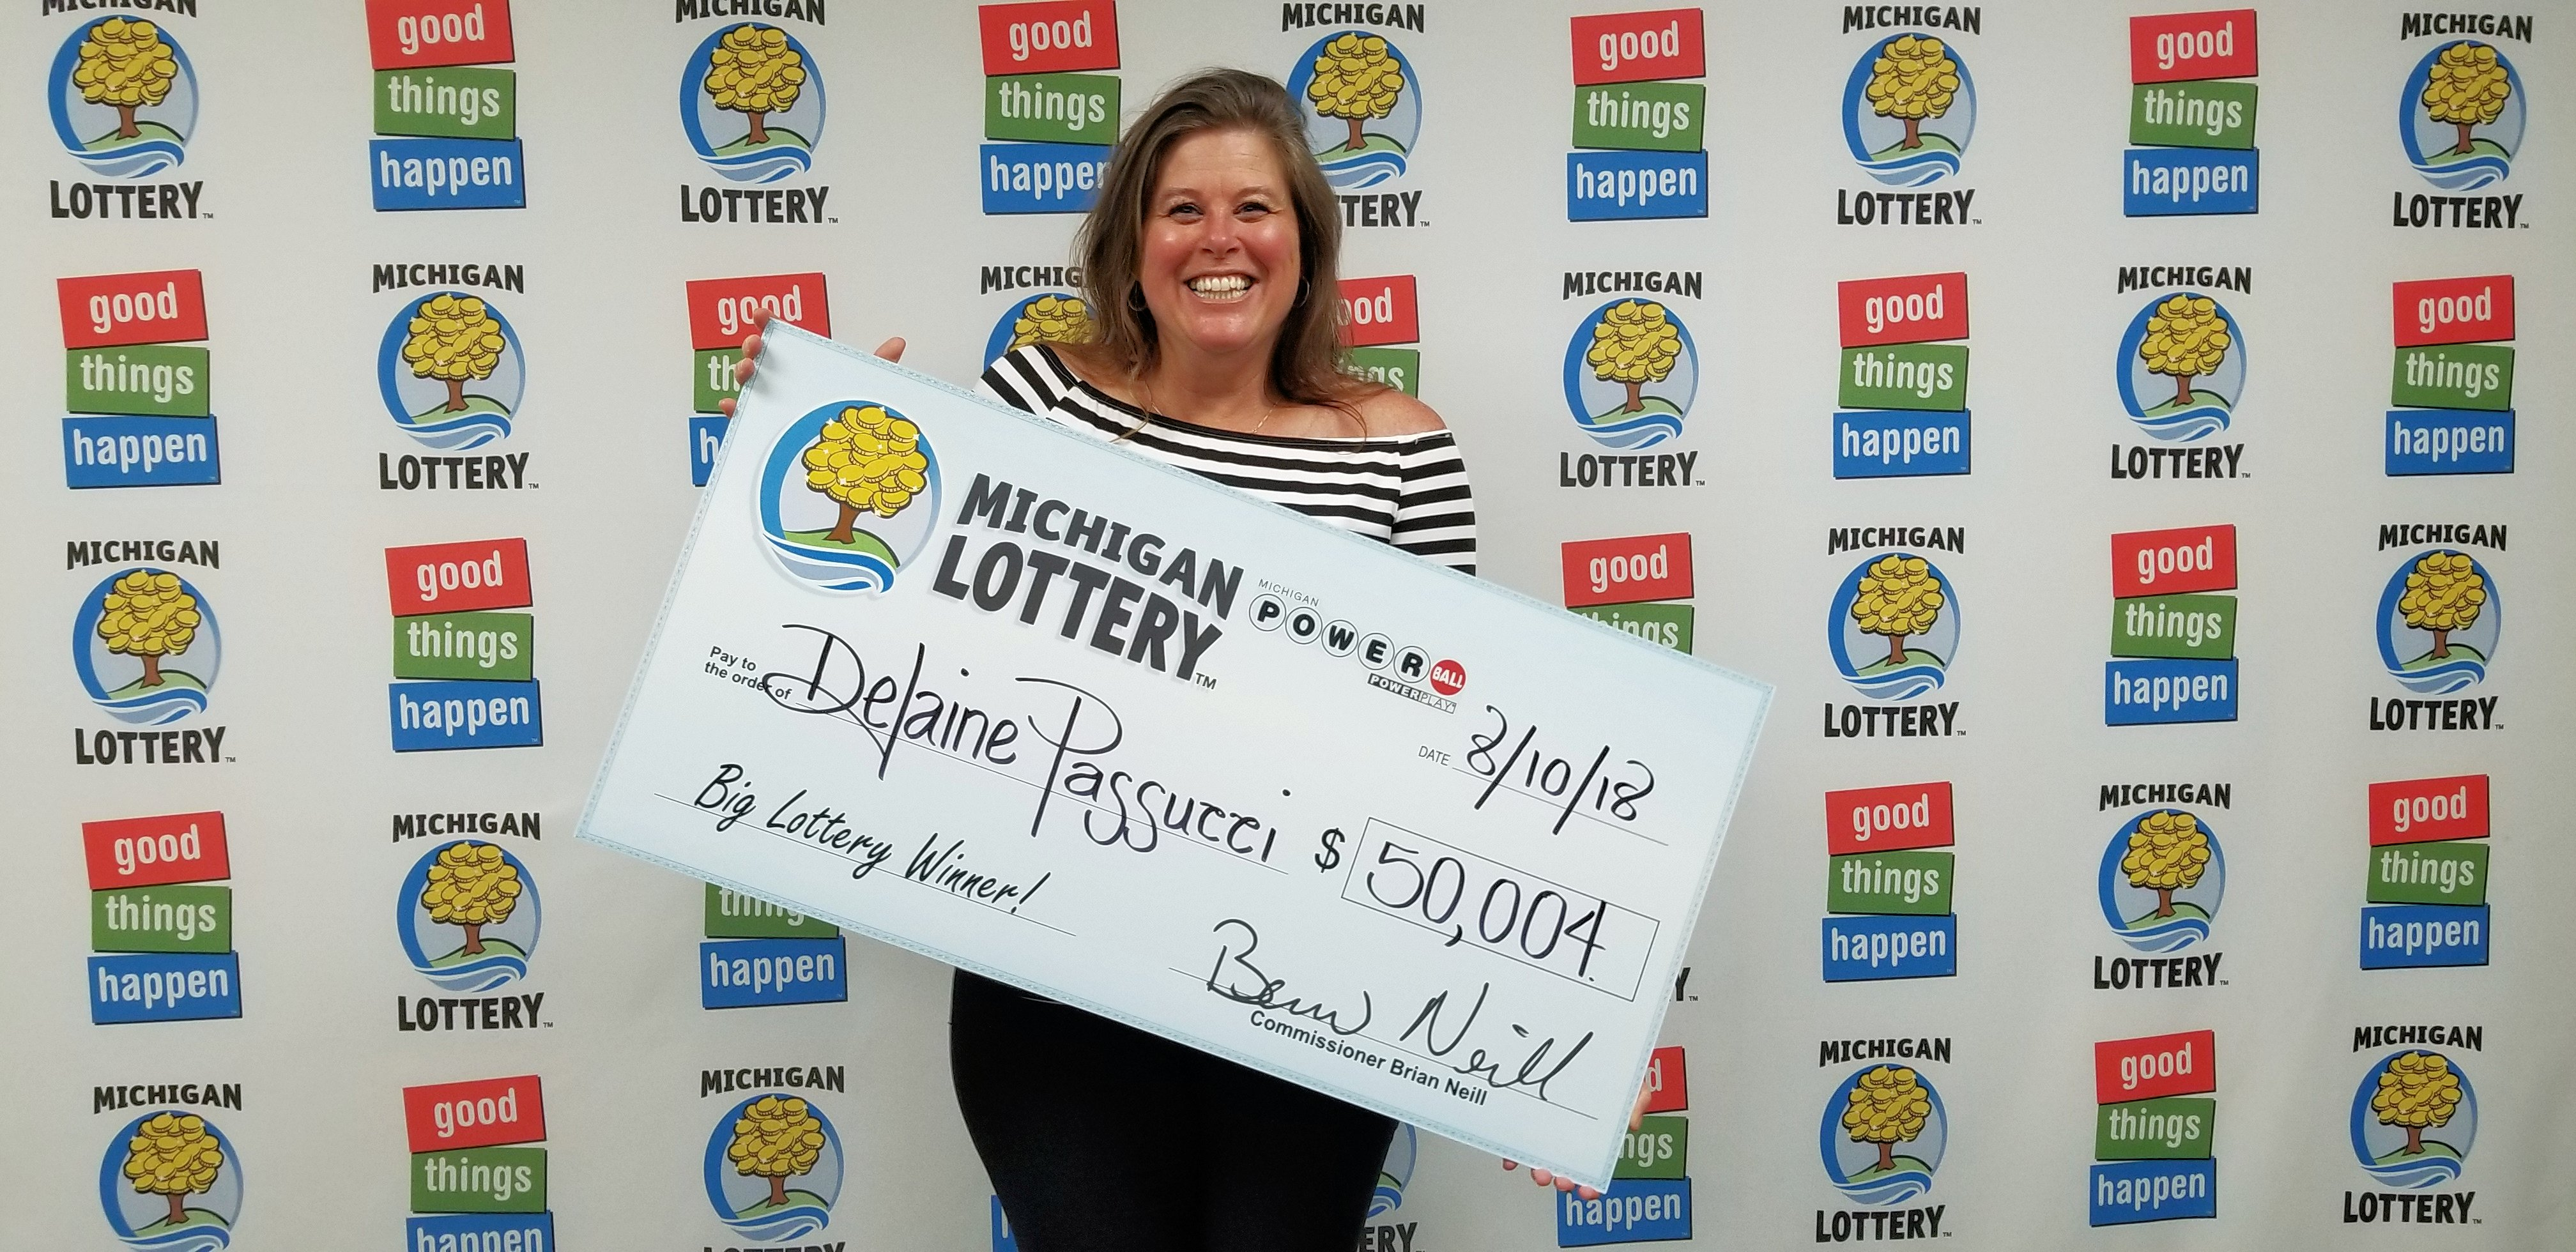 Canton Woman Wins 50 004 Powerball Prize From The Michigan Lottery